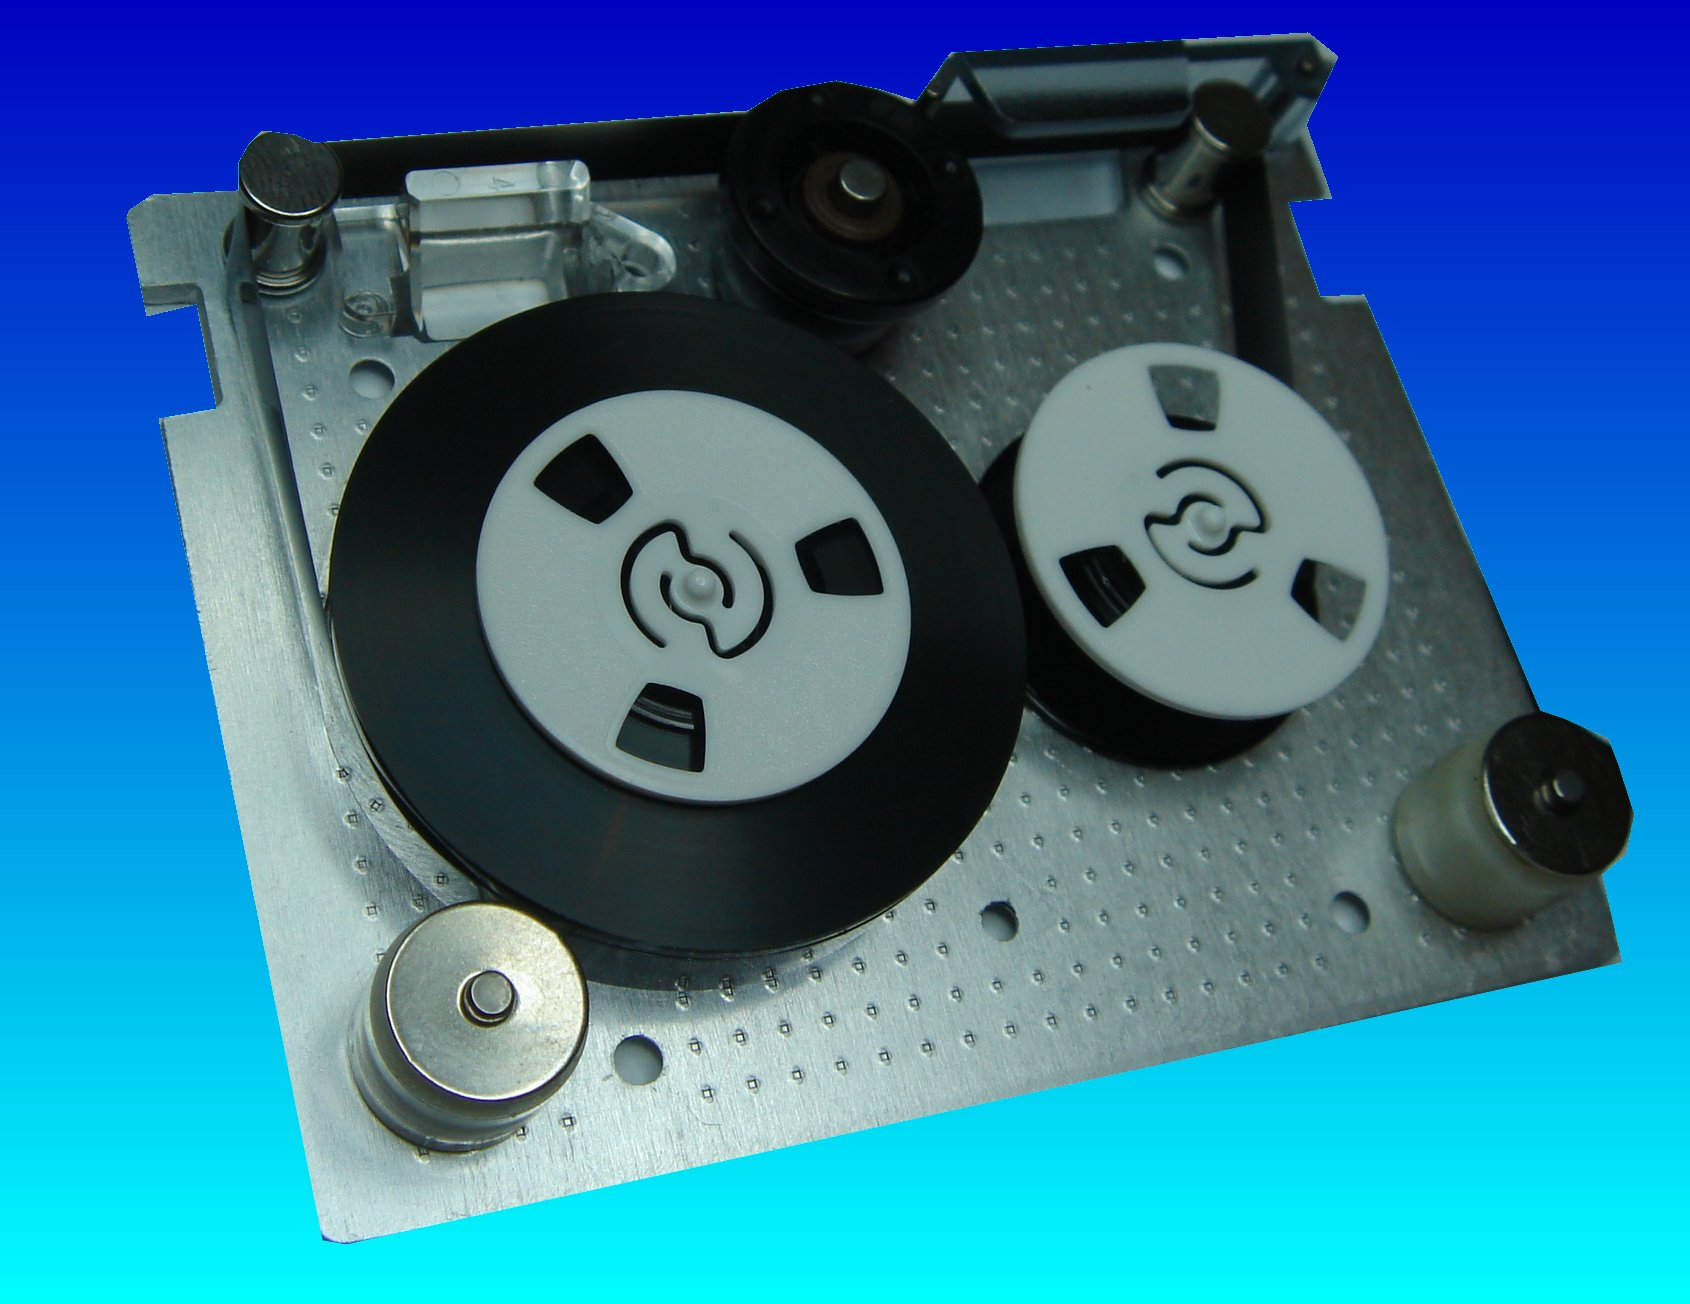 A QIC-80 tape cartridge with it's outer case removed exposing the tape reel mechanisms. These small tapes were  often used in HP Colorado Backup, Windows 95, 98 backups, Seagate and Backpack we have been able to recover the files even when the password was forgotten or the drive belt snapped.